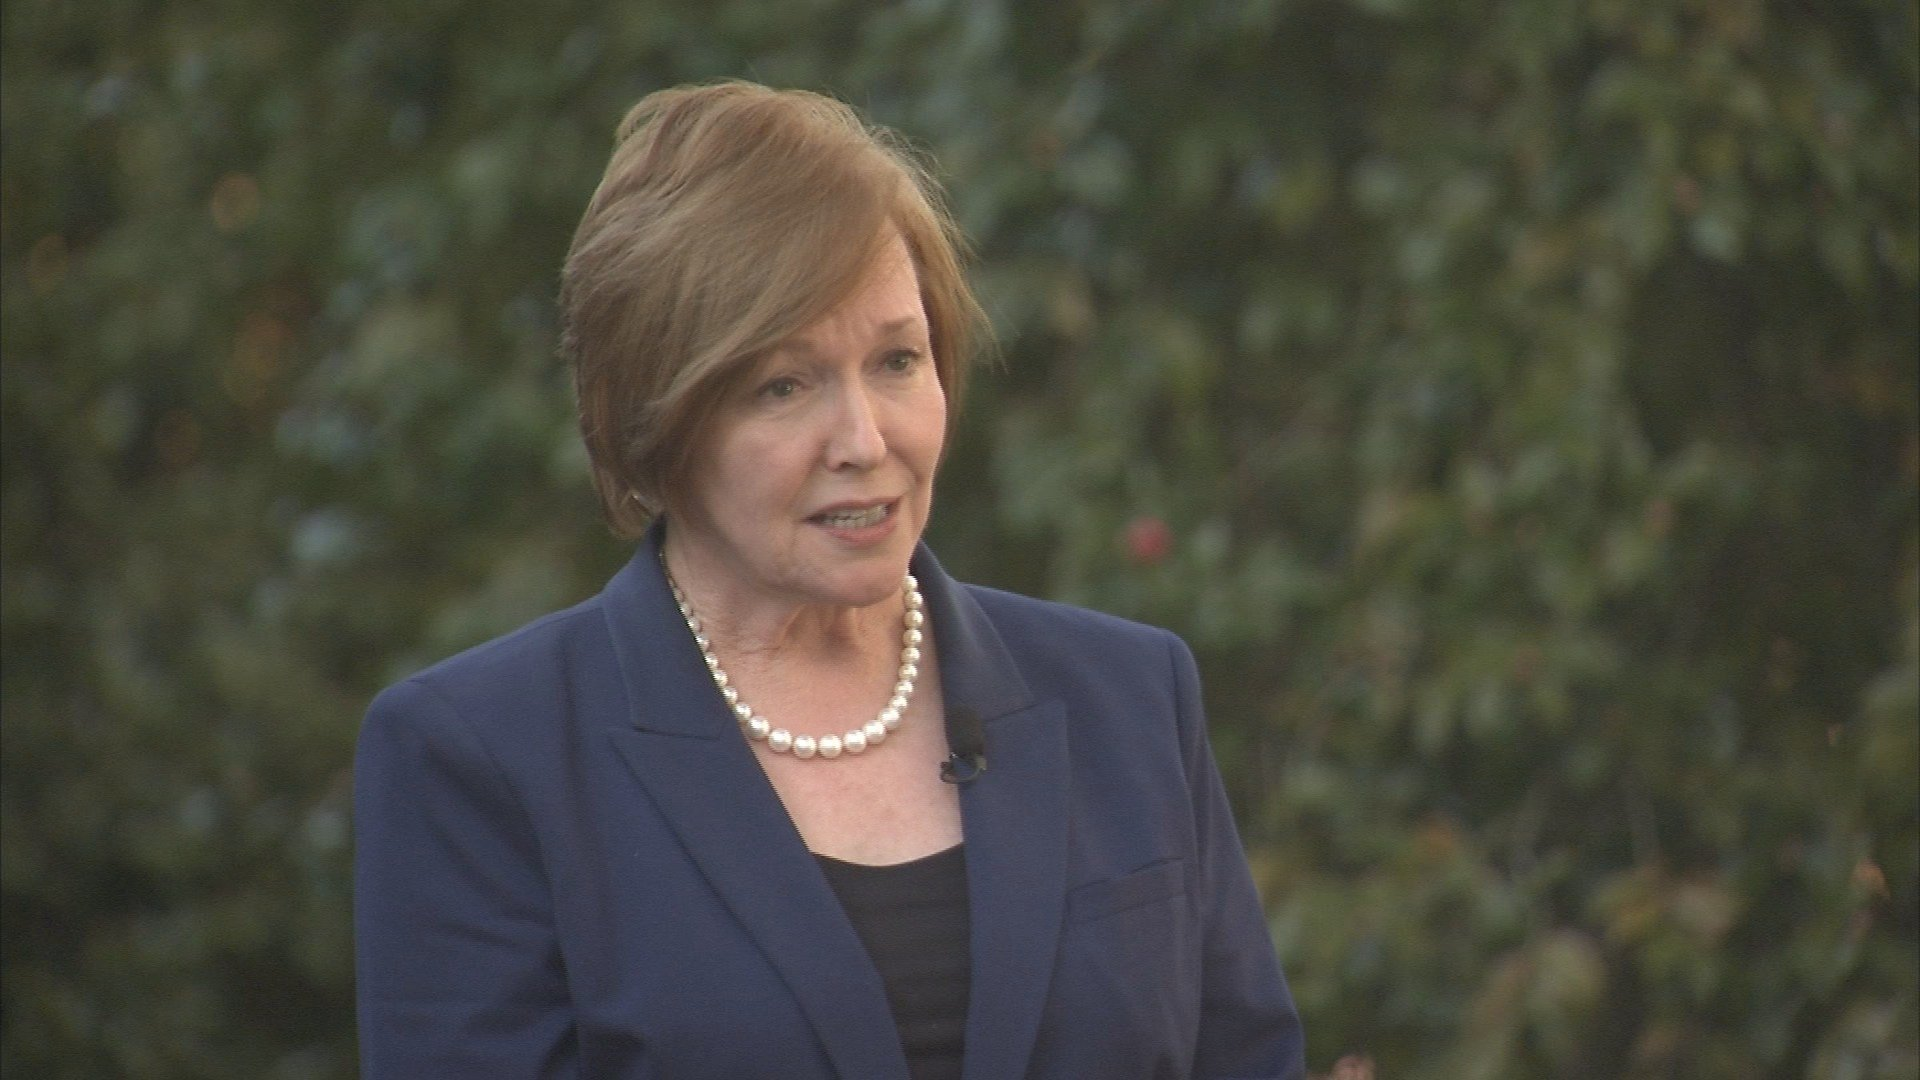 CDC Director Brenda Fitzgerald resigns